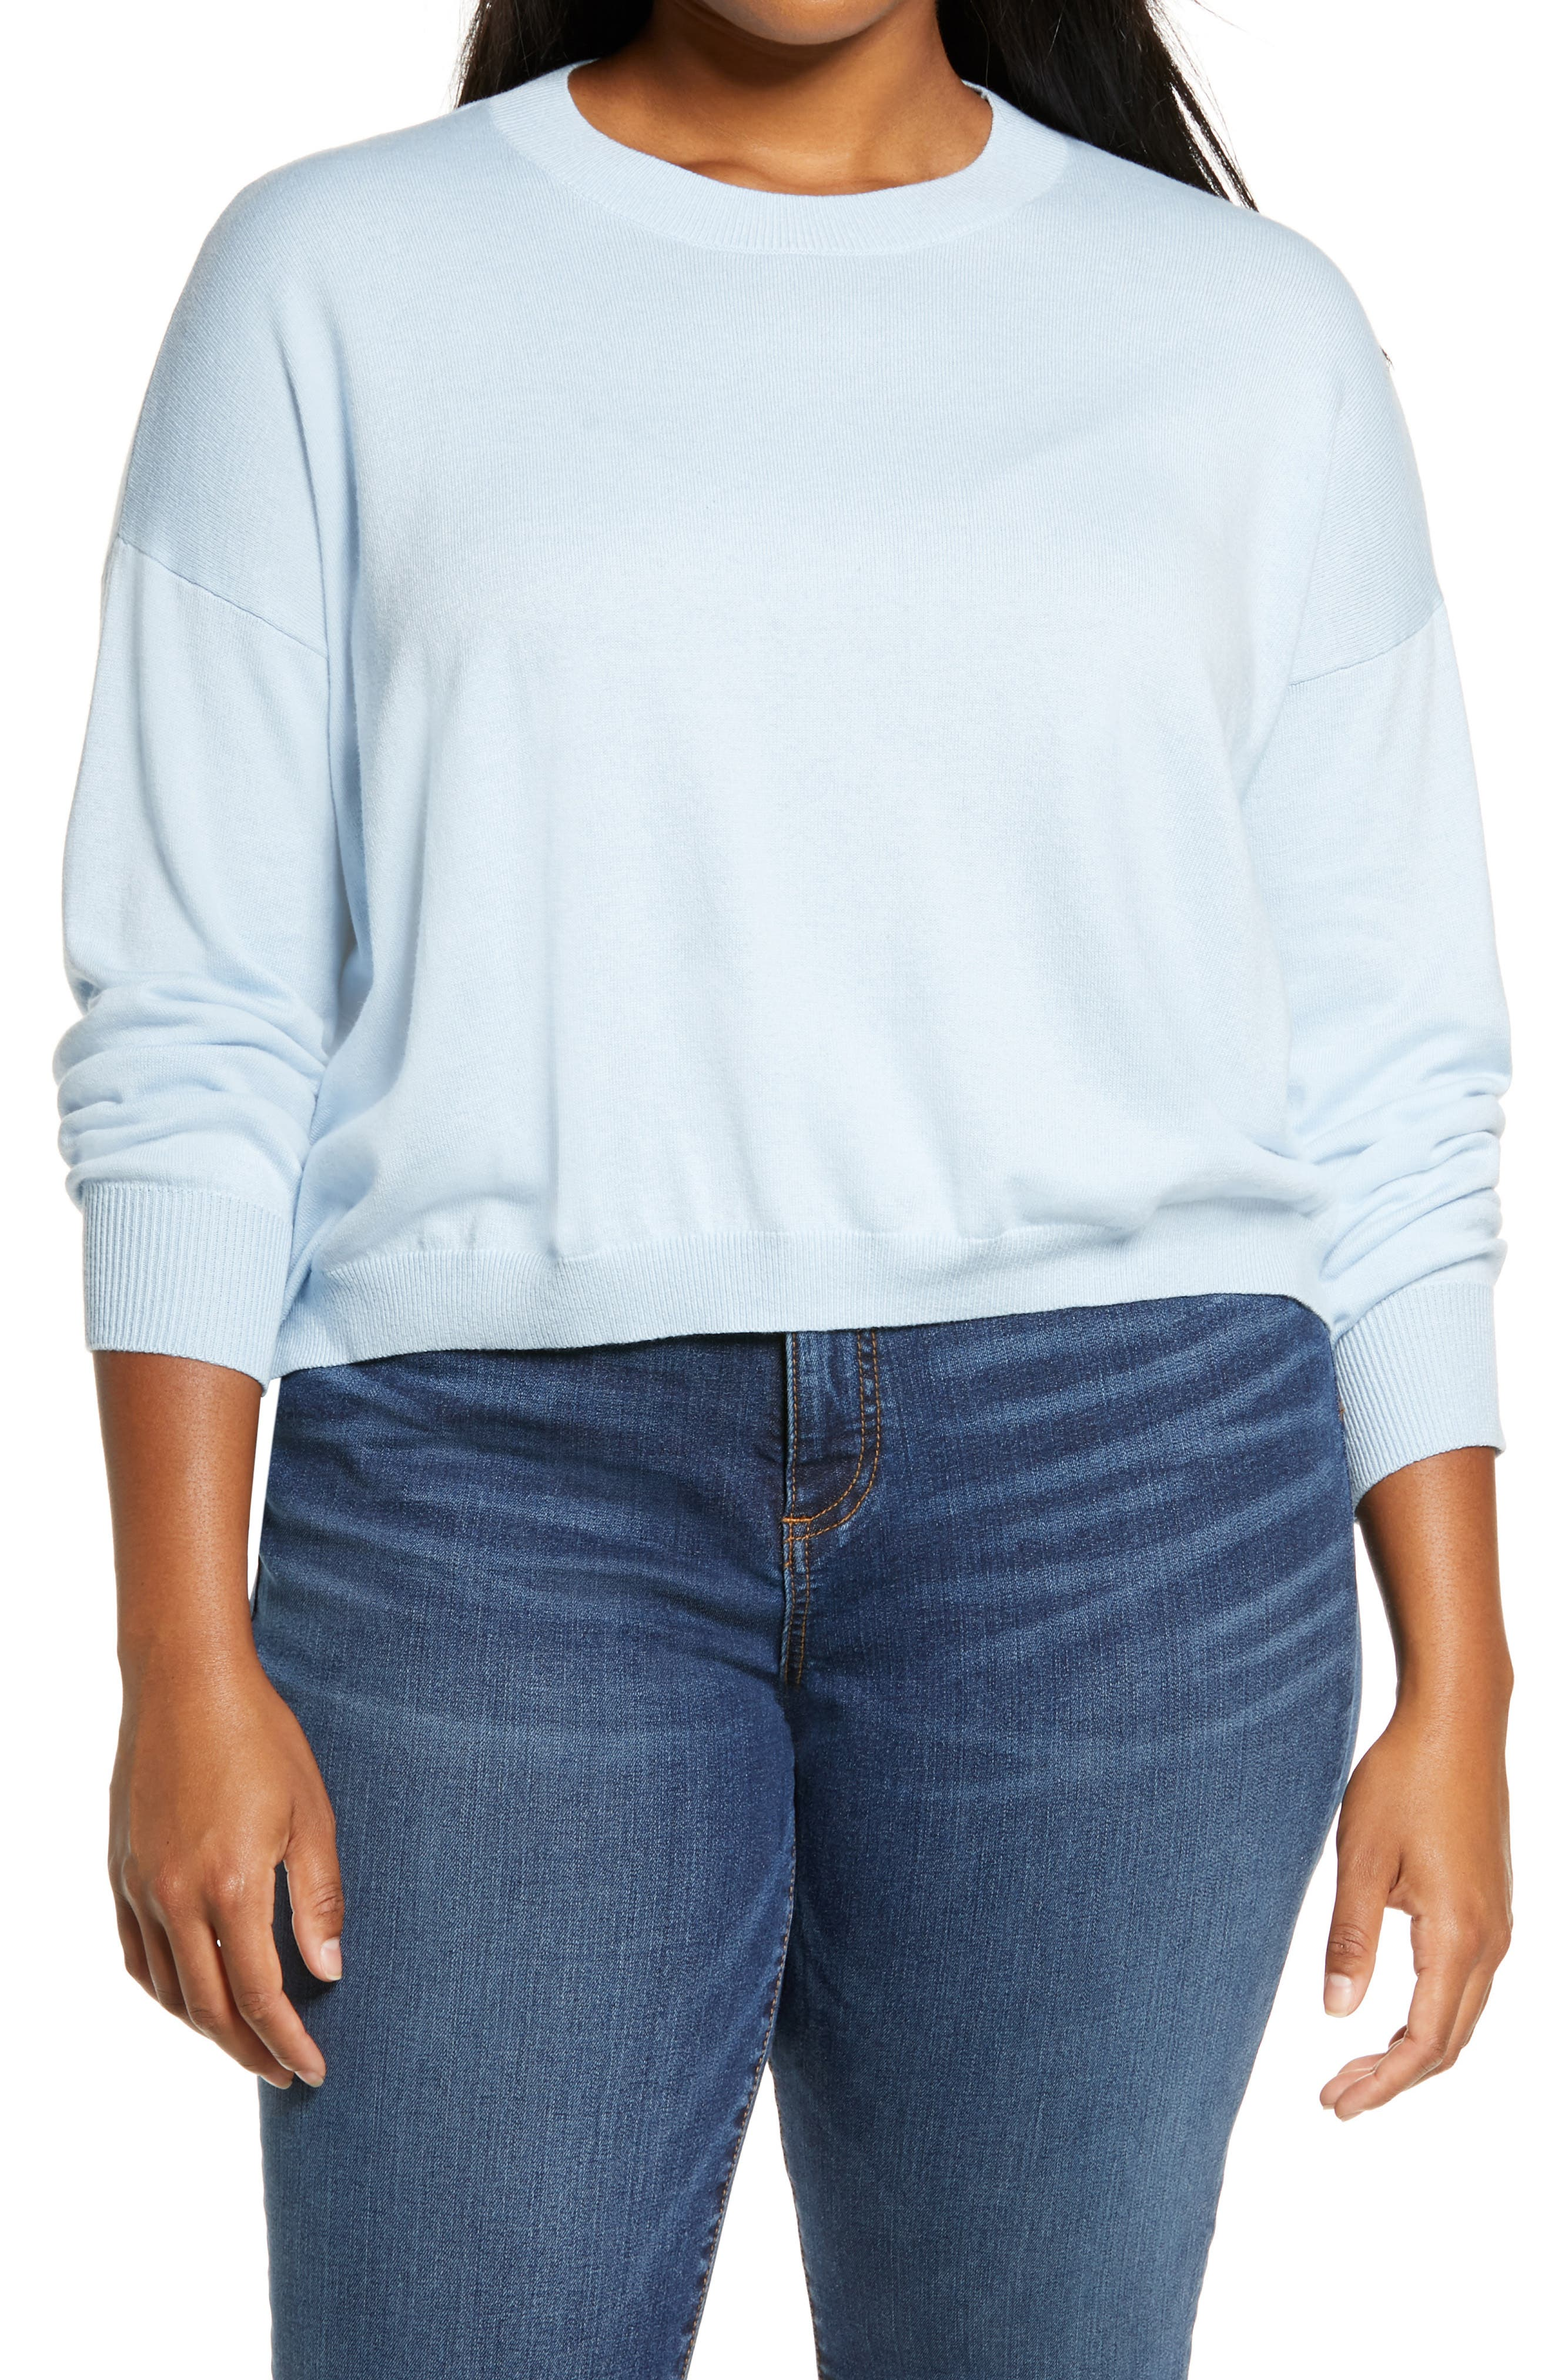 Dropped shoulders enhance the easy, slouchy fit of this everyday sweater. Style Name: Bp. Easy Drop Shoulder Sweater (Plus Size). Style Number: 6014077 2. Available in stores.